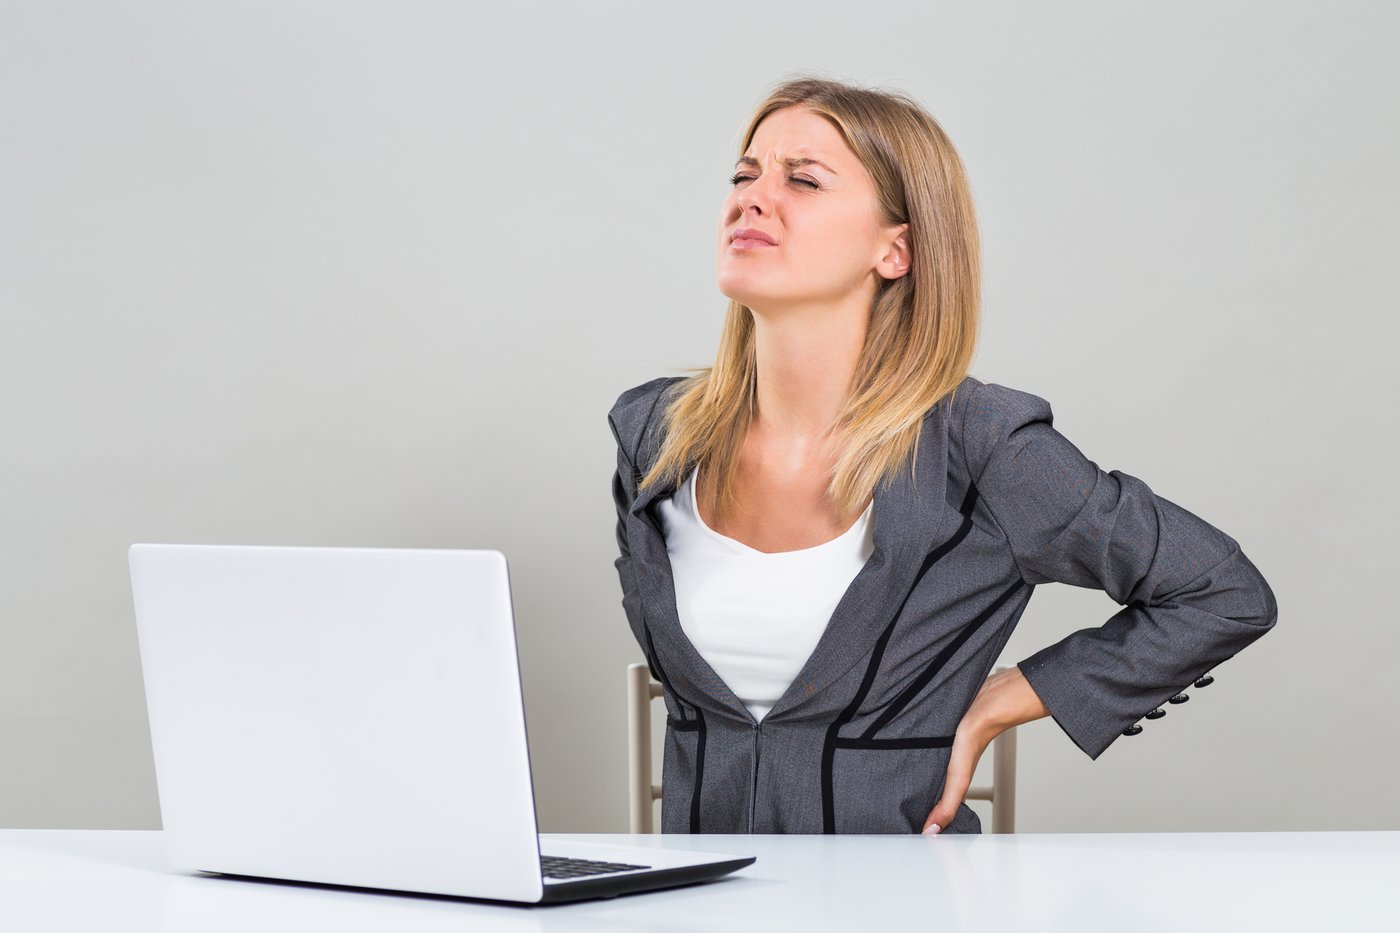 mistakes when sitting